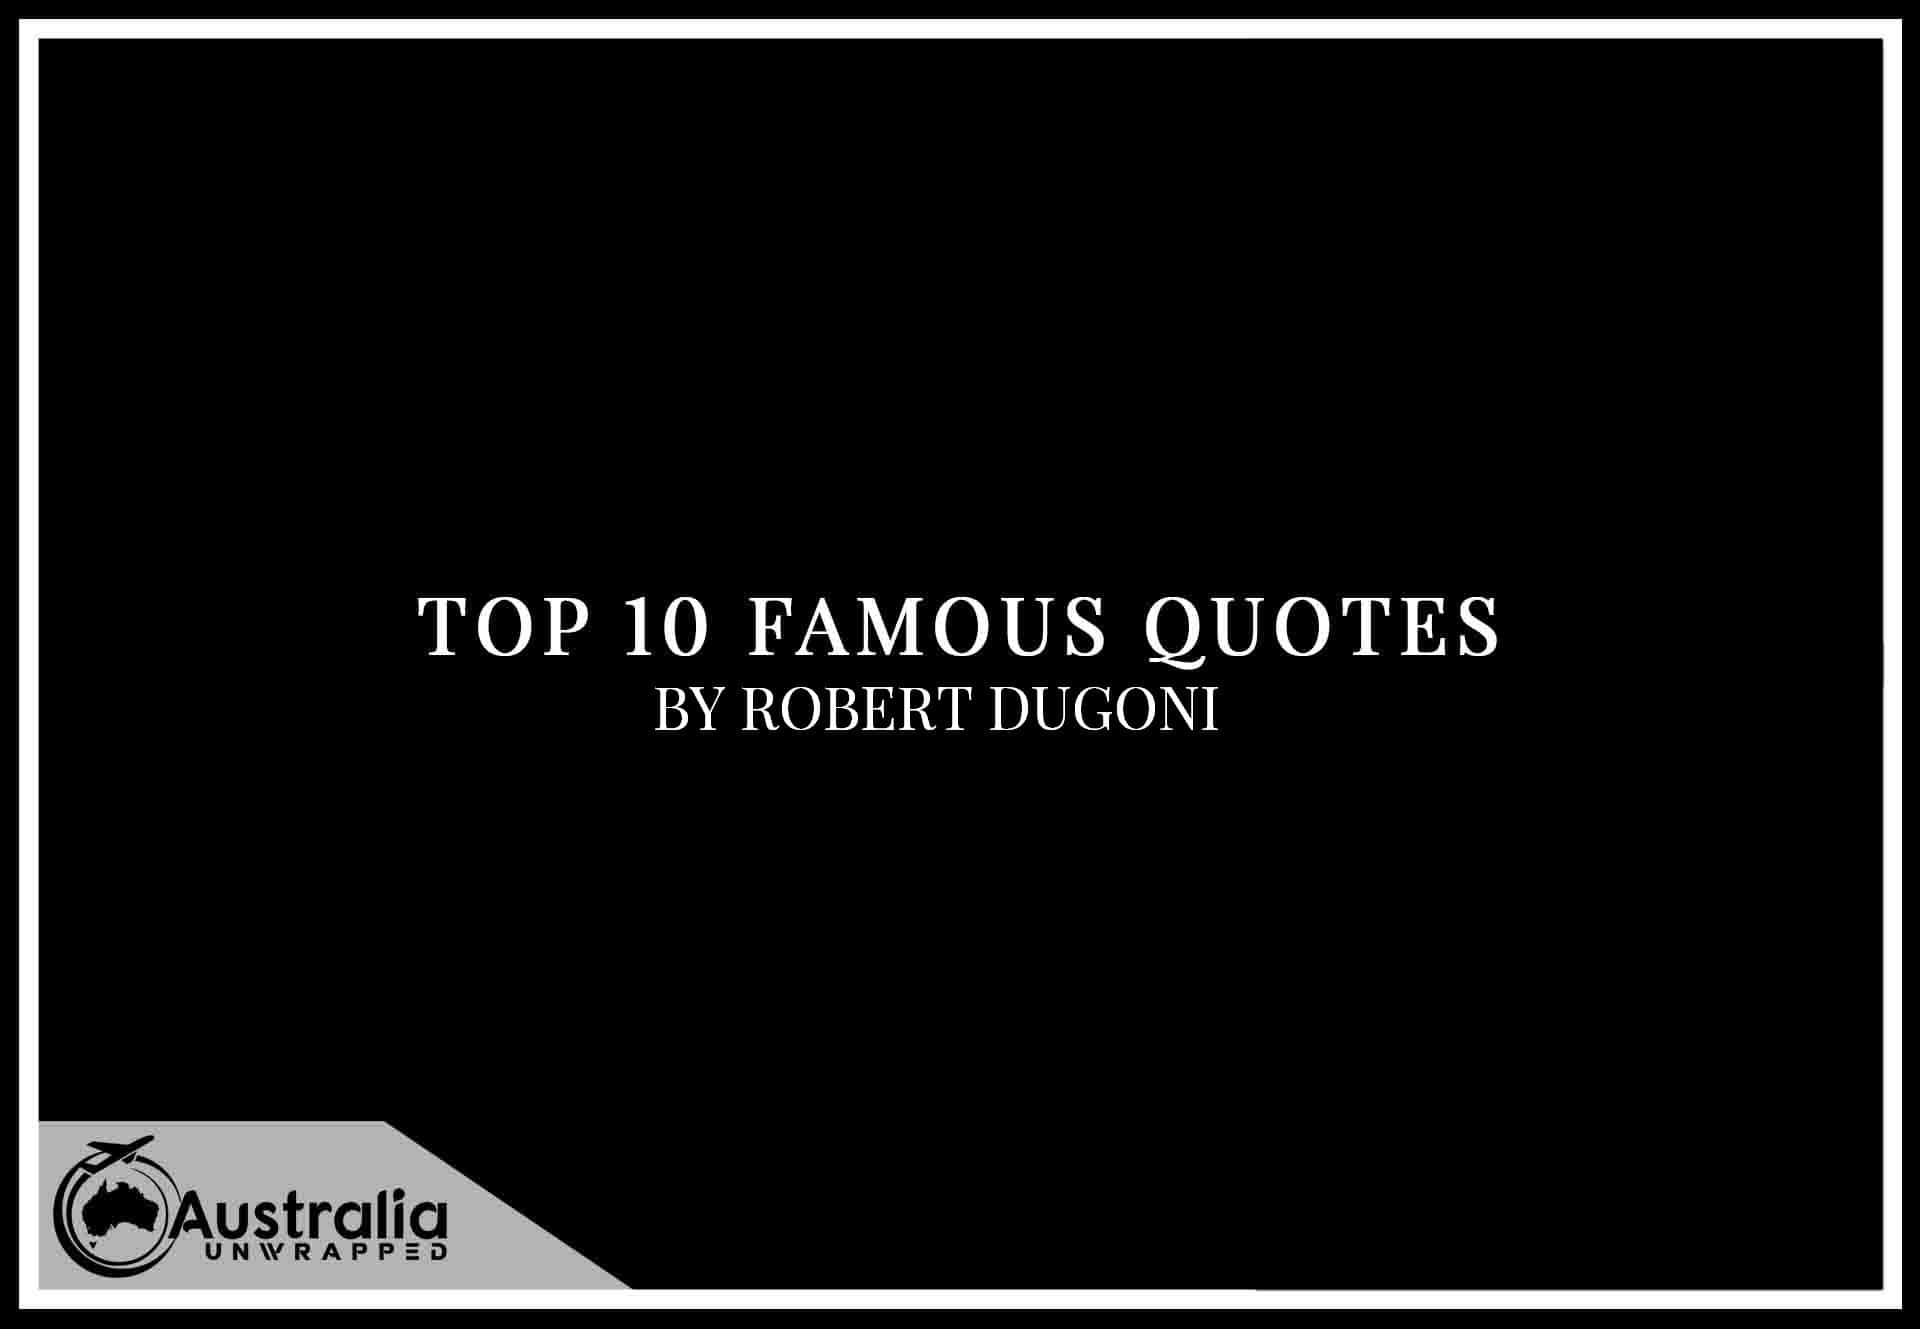 Top 10 Famous Quotes by Author Robert Dugoni